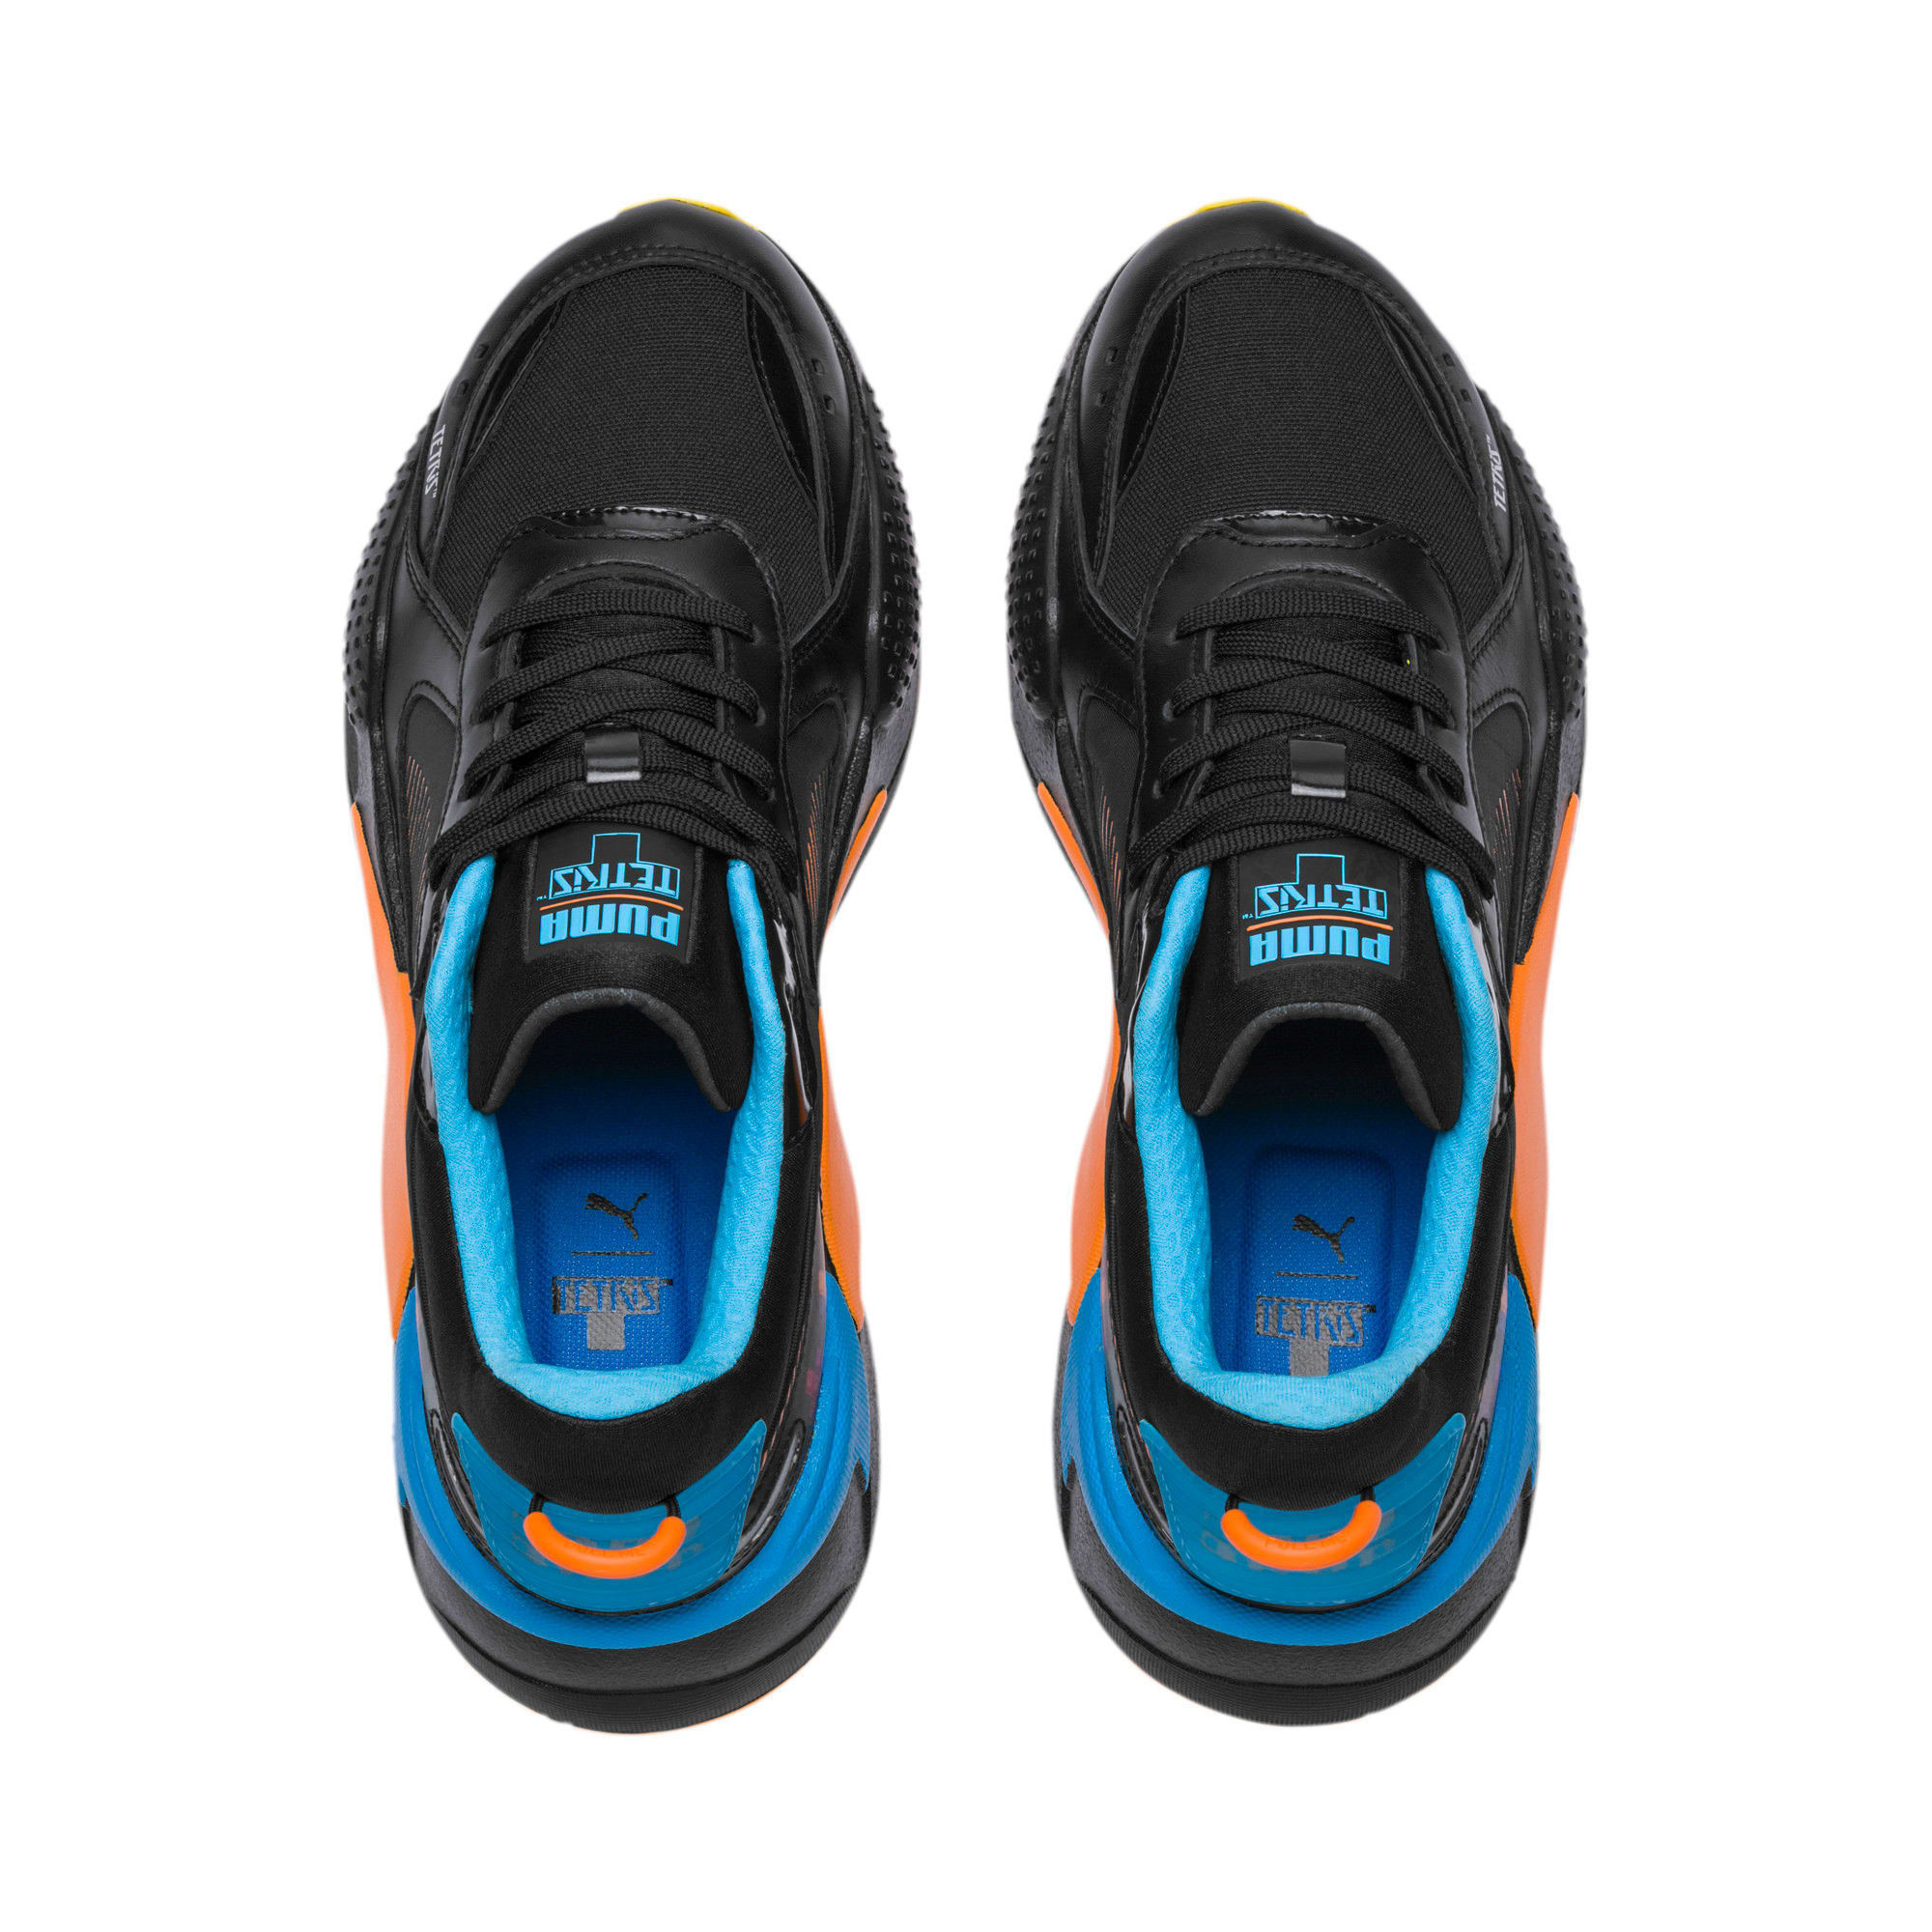 Thumbnail 6 of PUMA x TETRIS RS-X スニーカー, Puma Black-Luminous Blue, medium-JPN